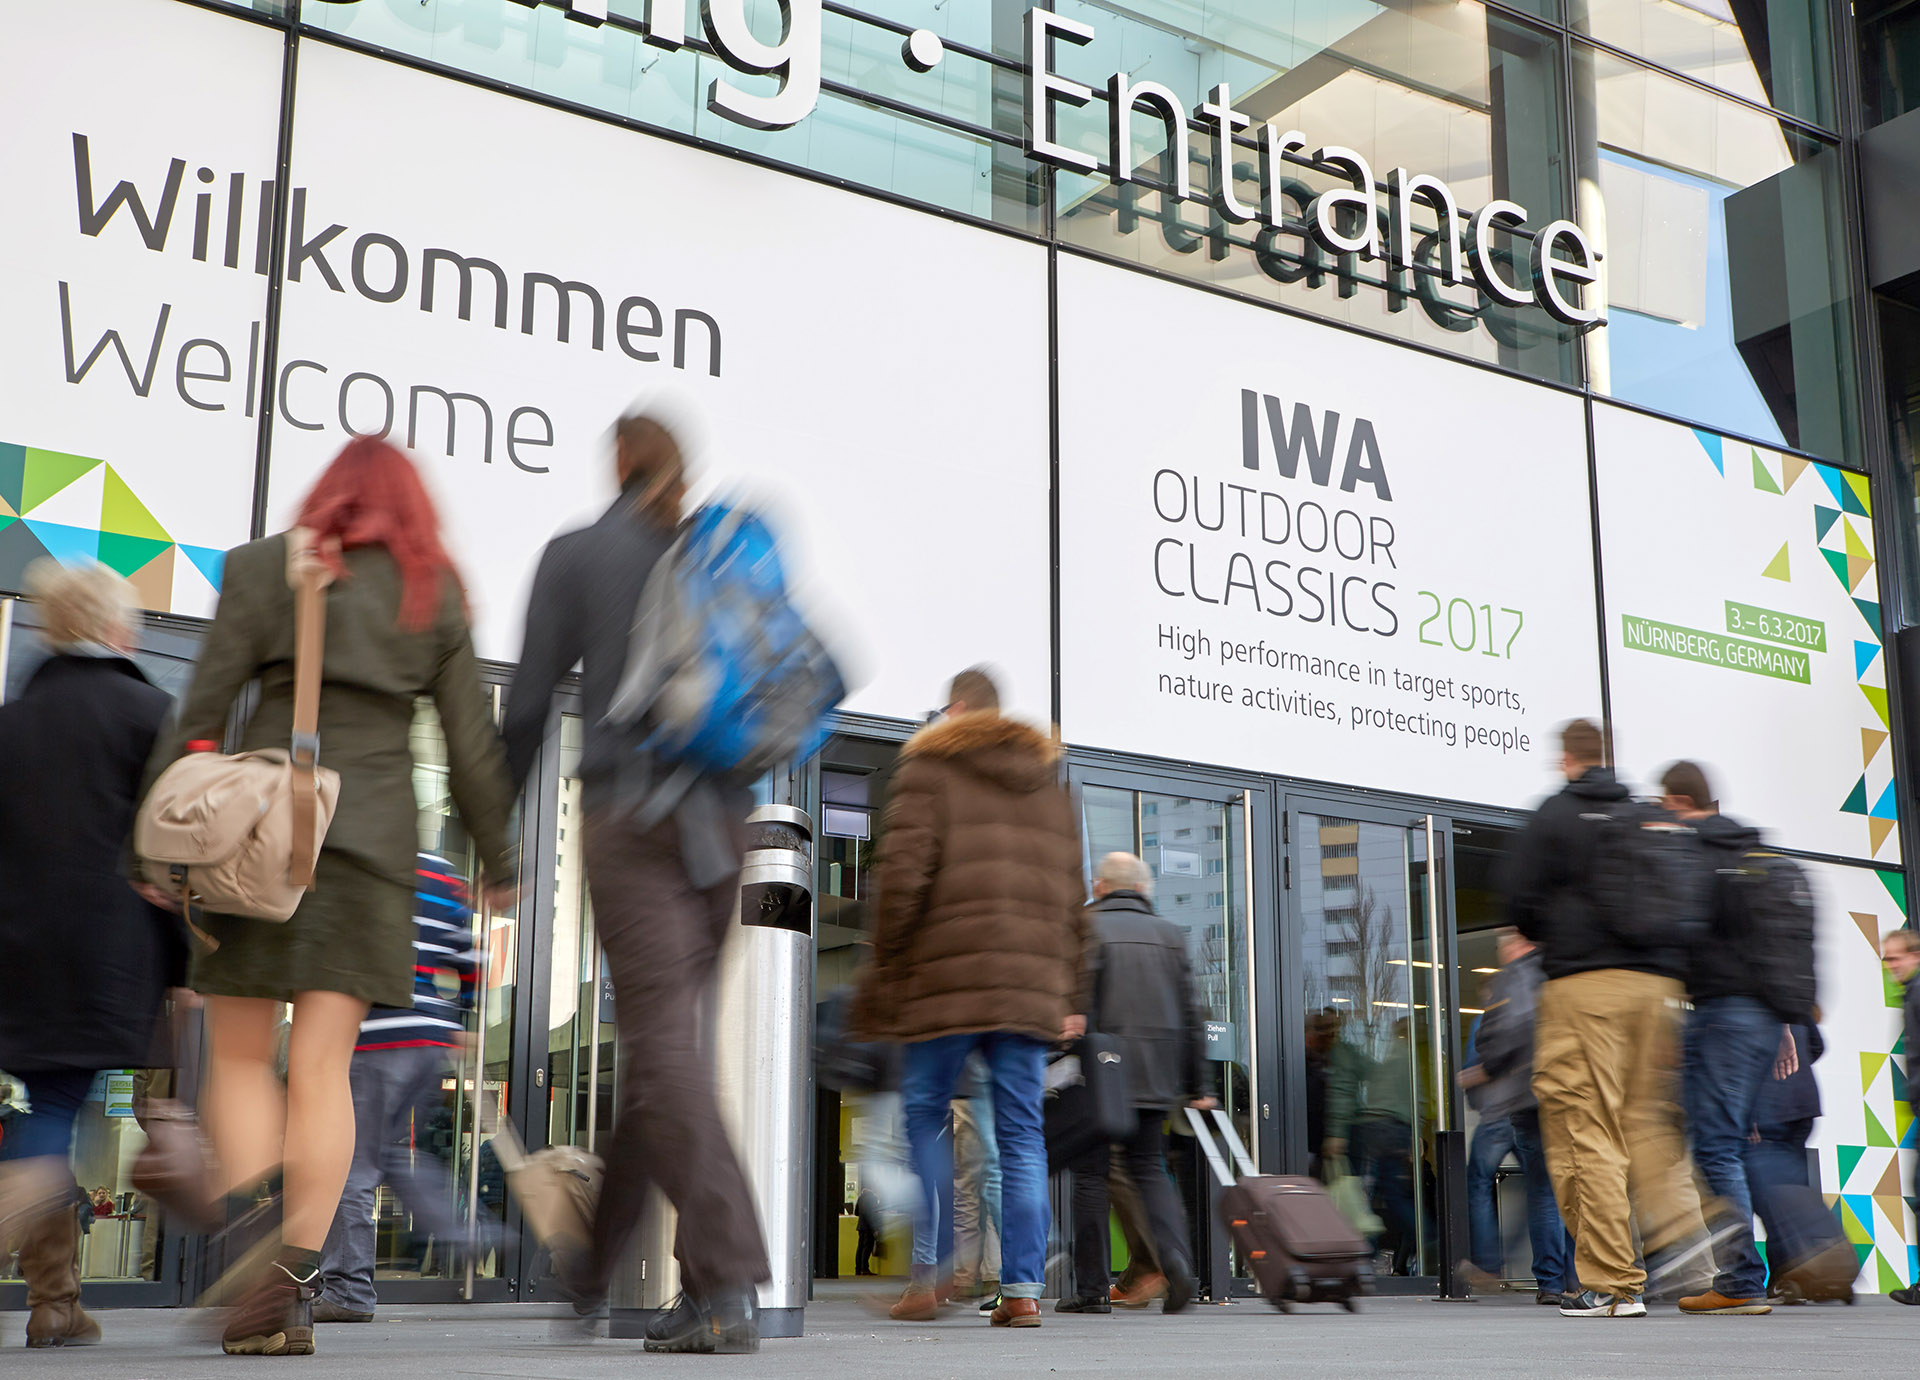 IWA OutdoorClassics central entrance